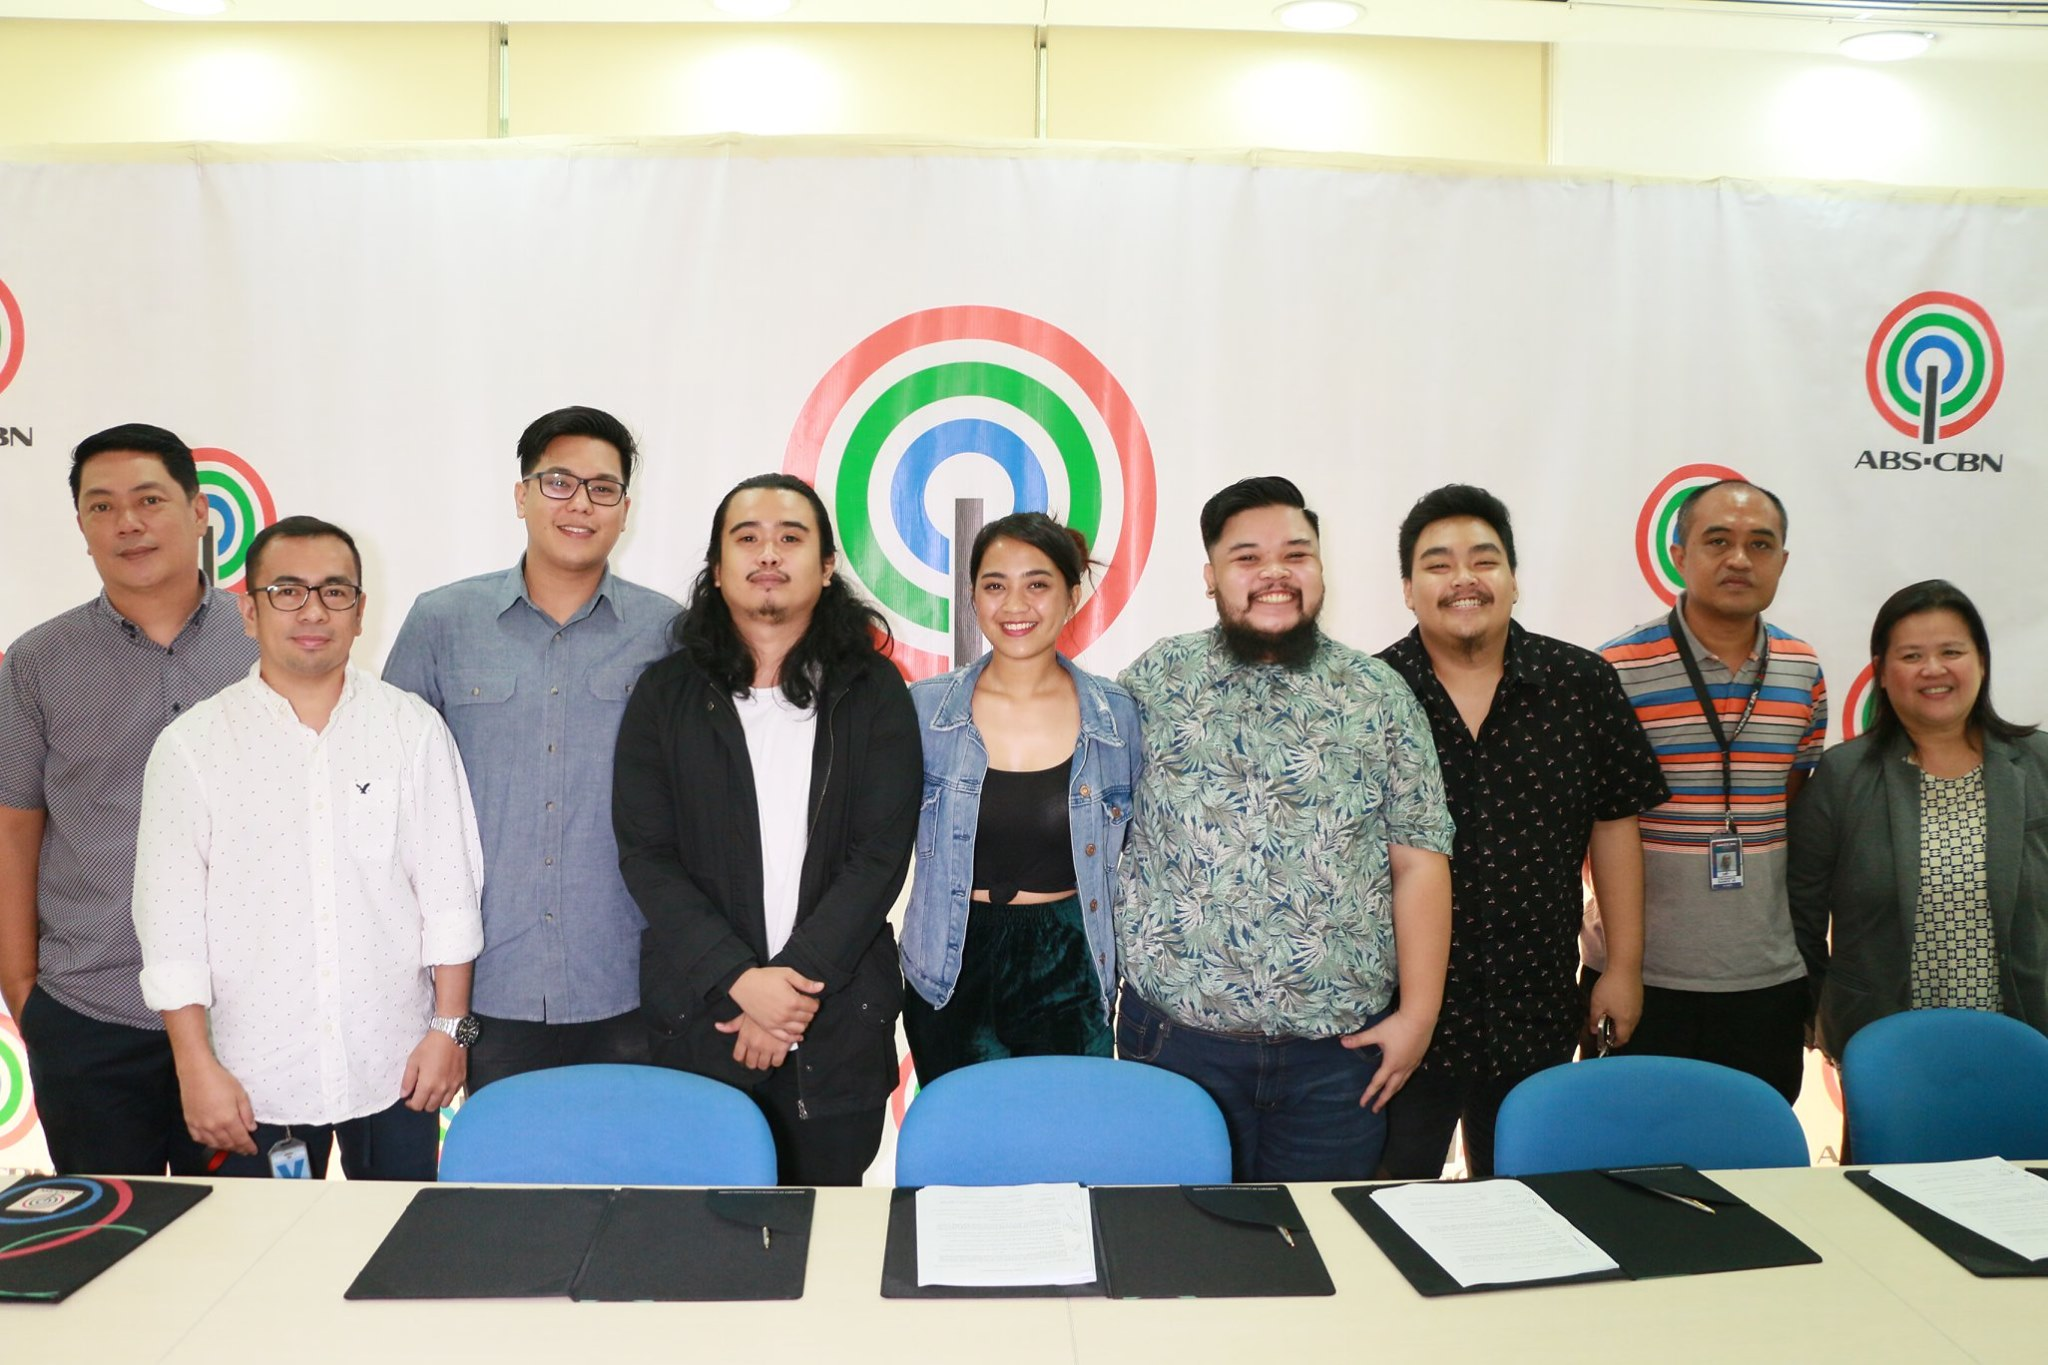 Chiquerella, Hulo, Three Two One, and Cool Cat Ash sign contracts under DNA Music